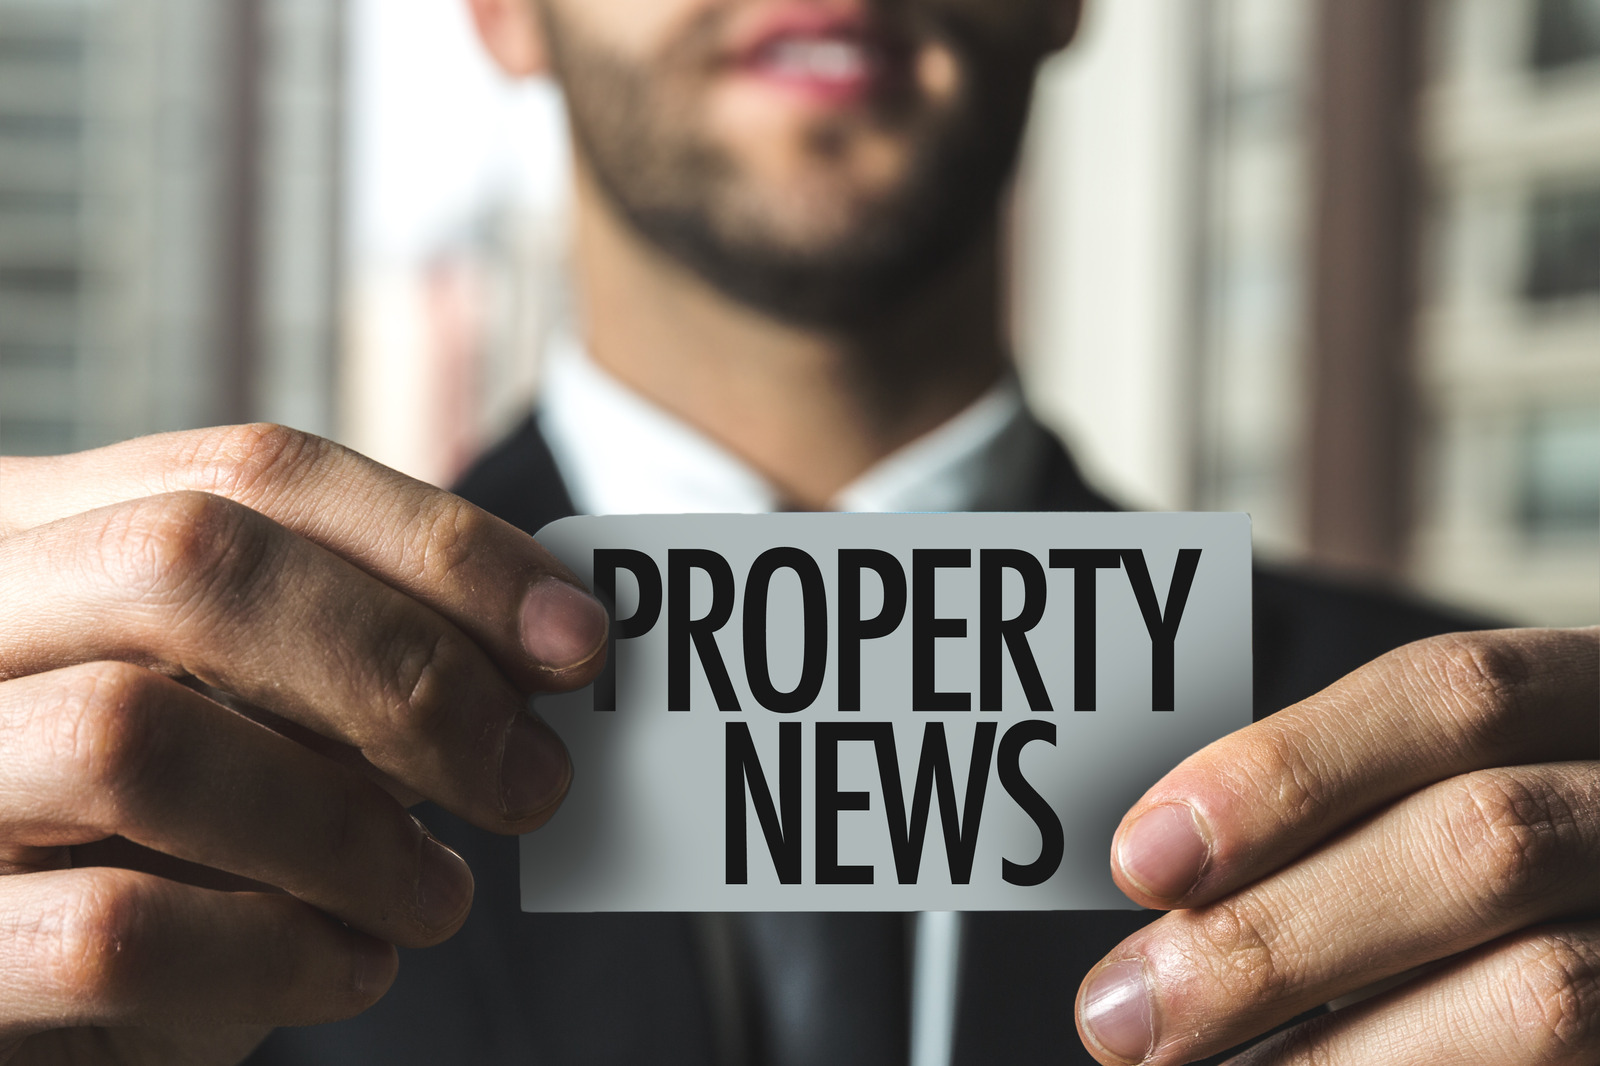 Real Property News / Fake News – Who to believe? - September 2019